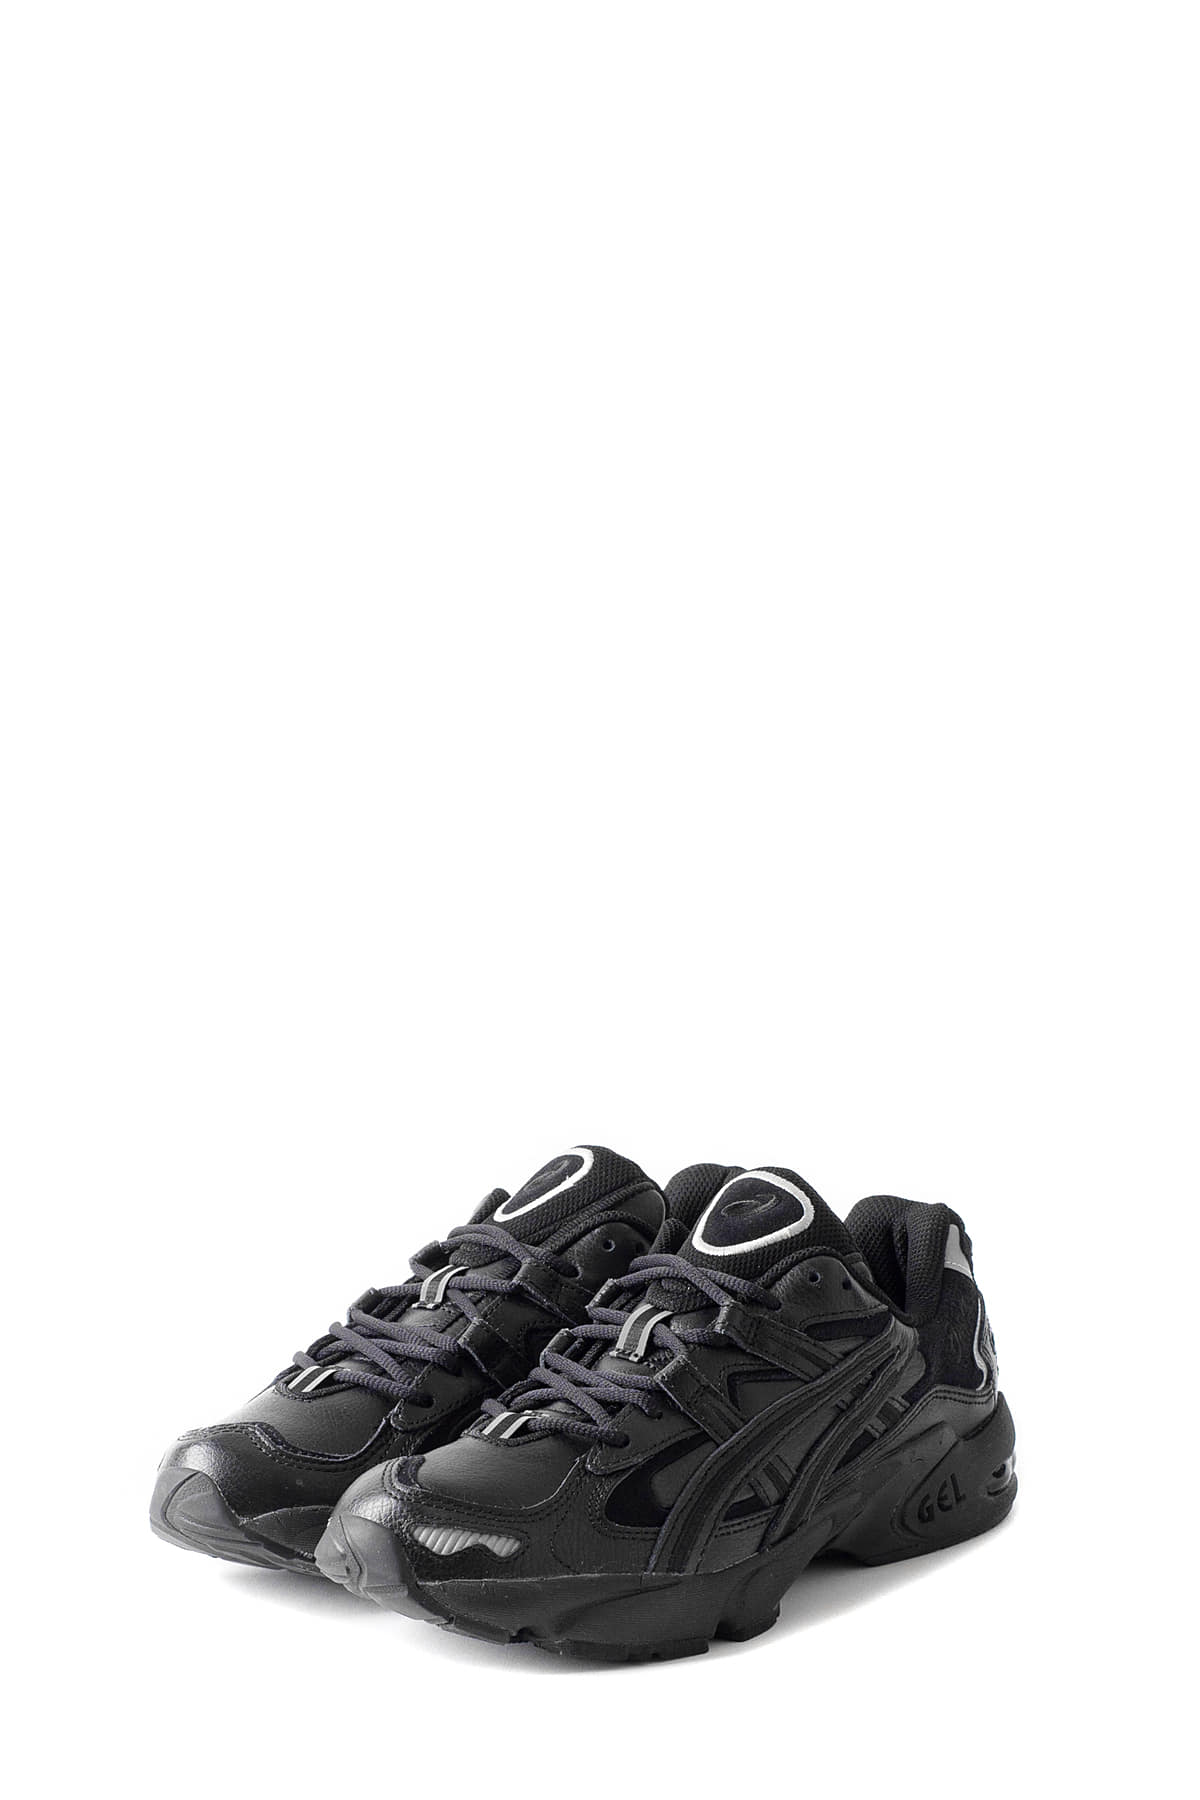 asics tiger : Gel-Kayano 5 OG (Black / Black)